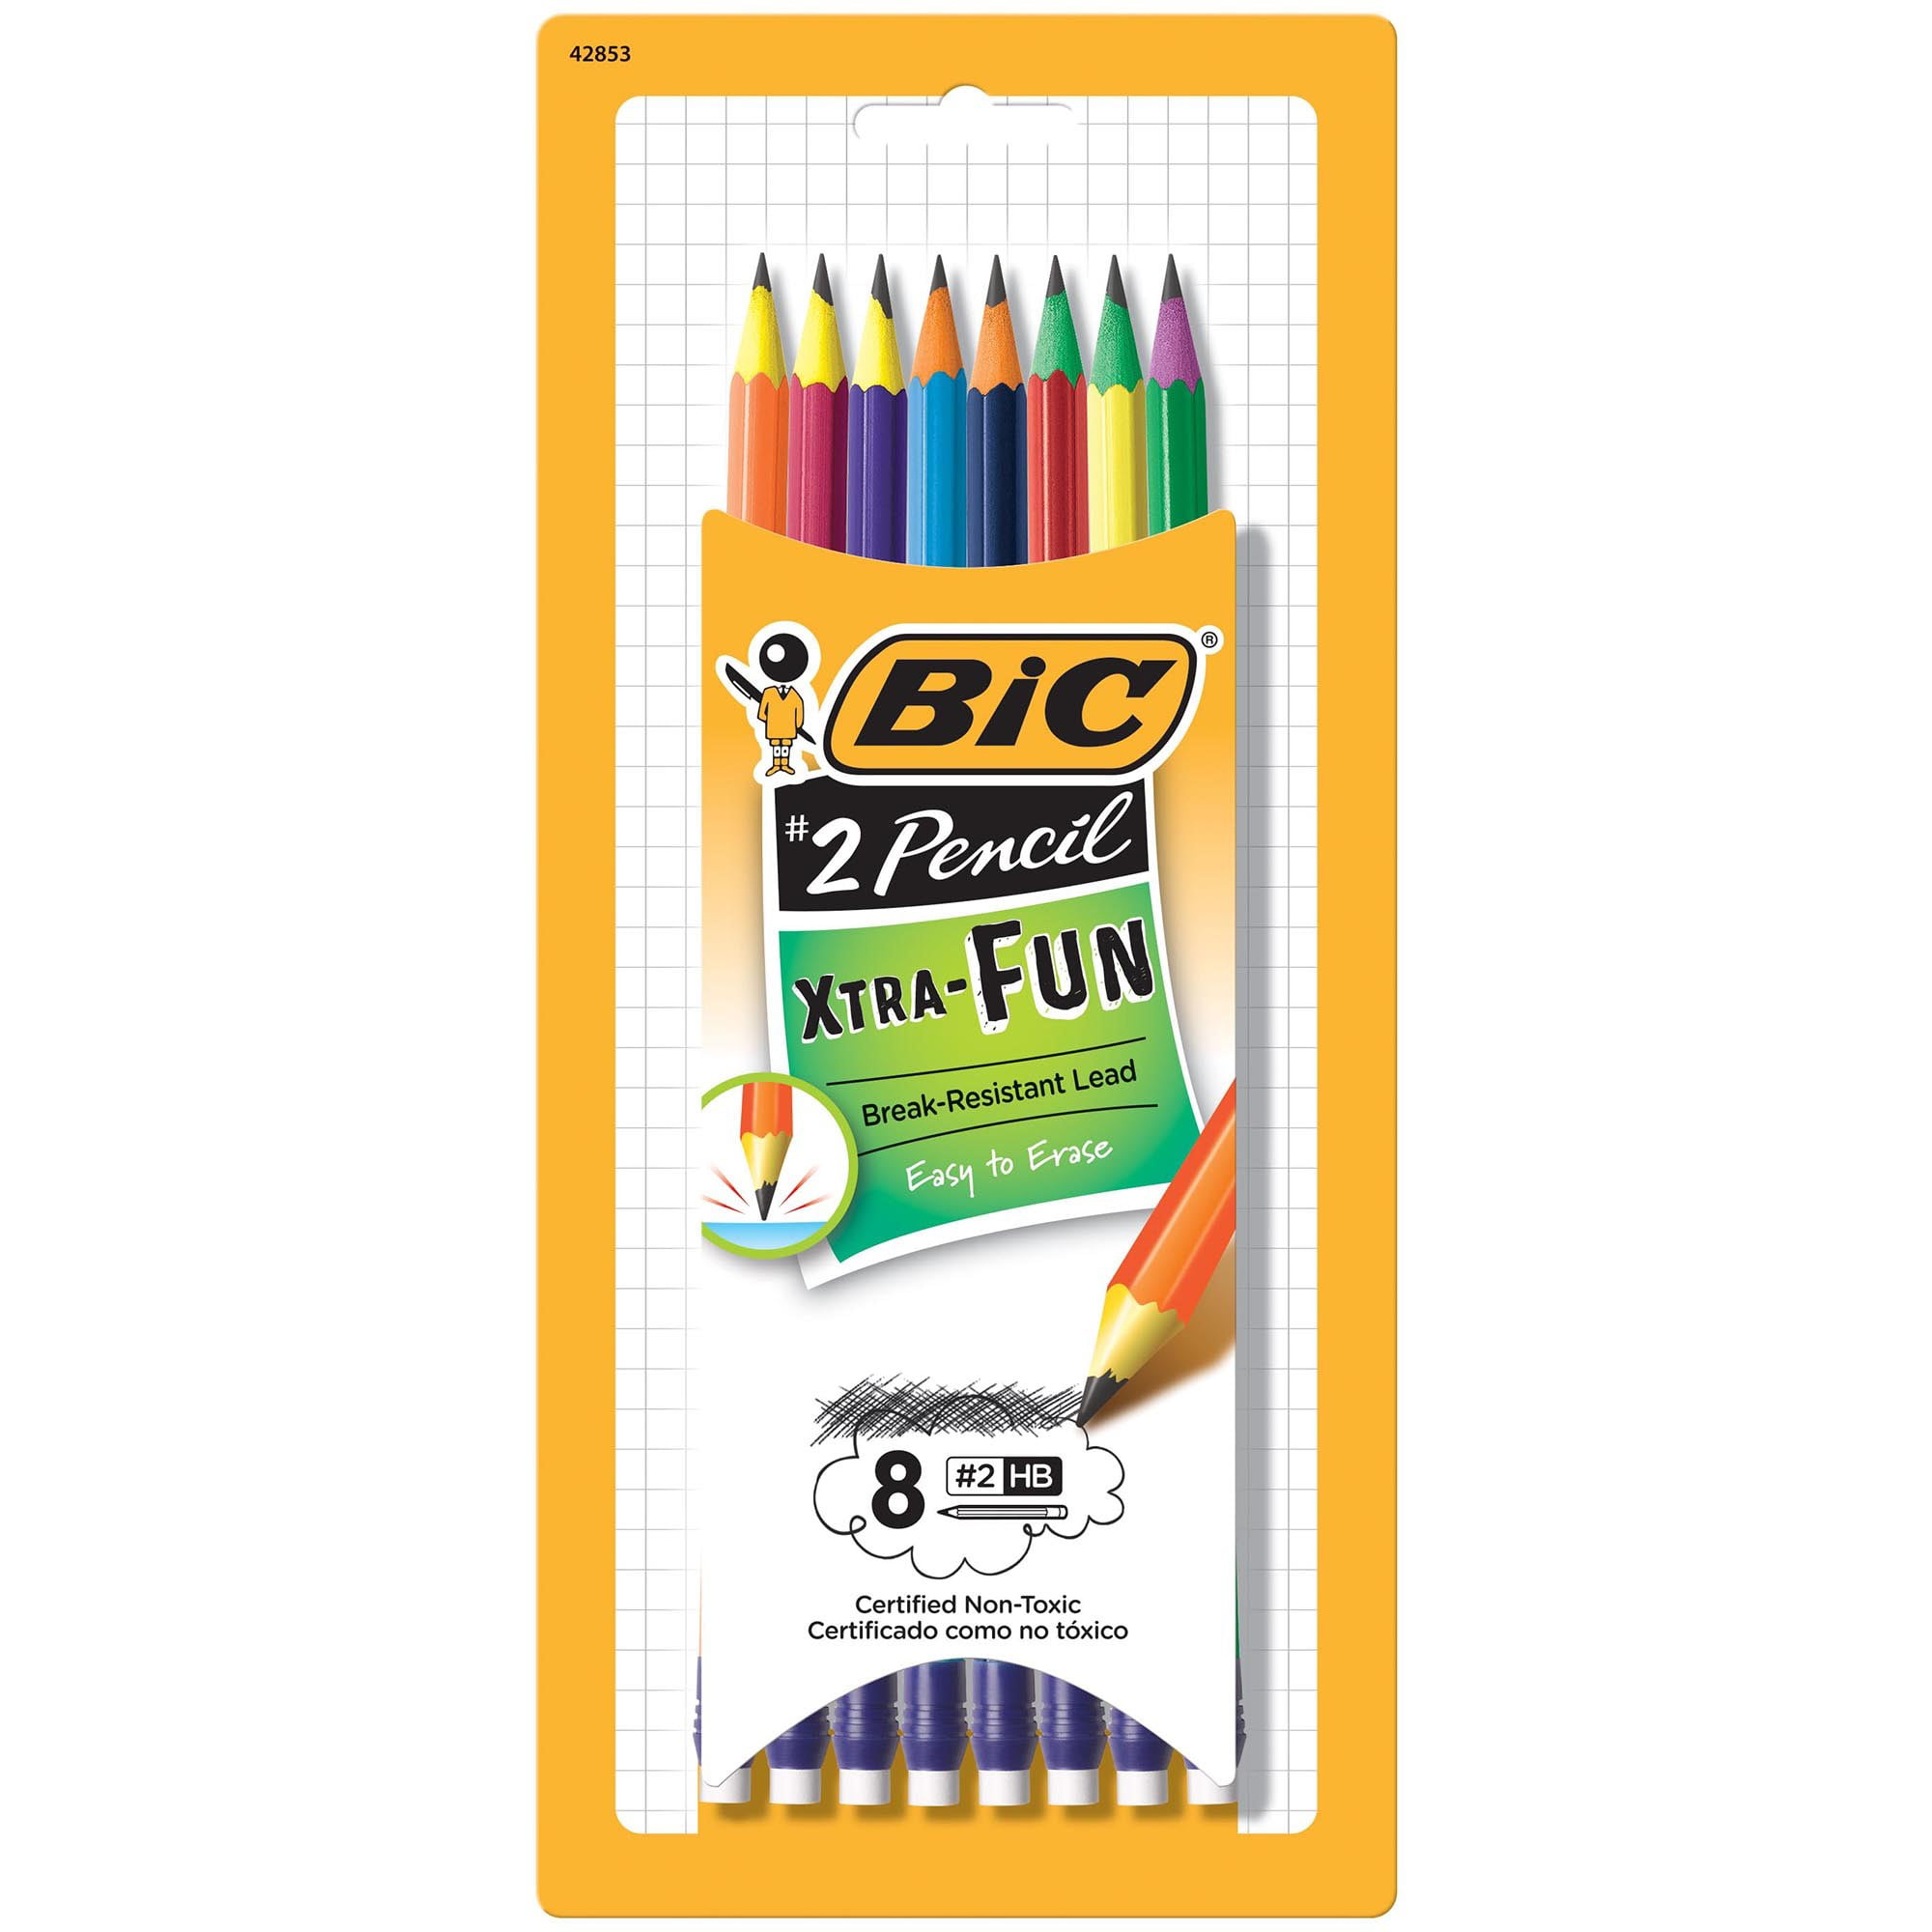 BIC Pencil Xtra Fun Graphite Pencil, #2 HB, 8-Count by BIC USA, Inc.